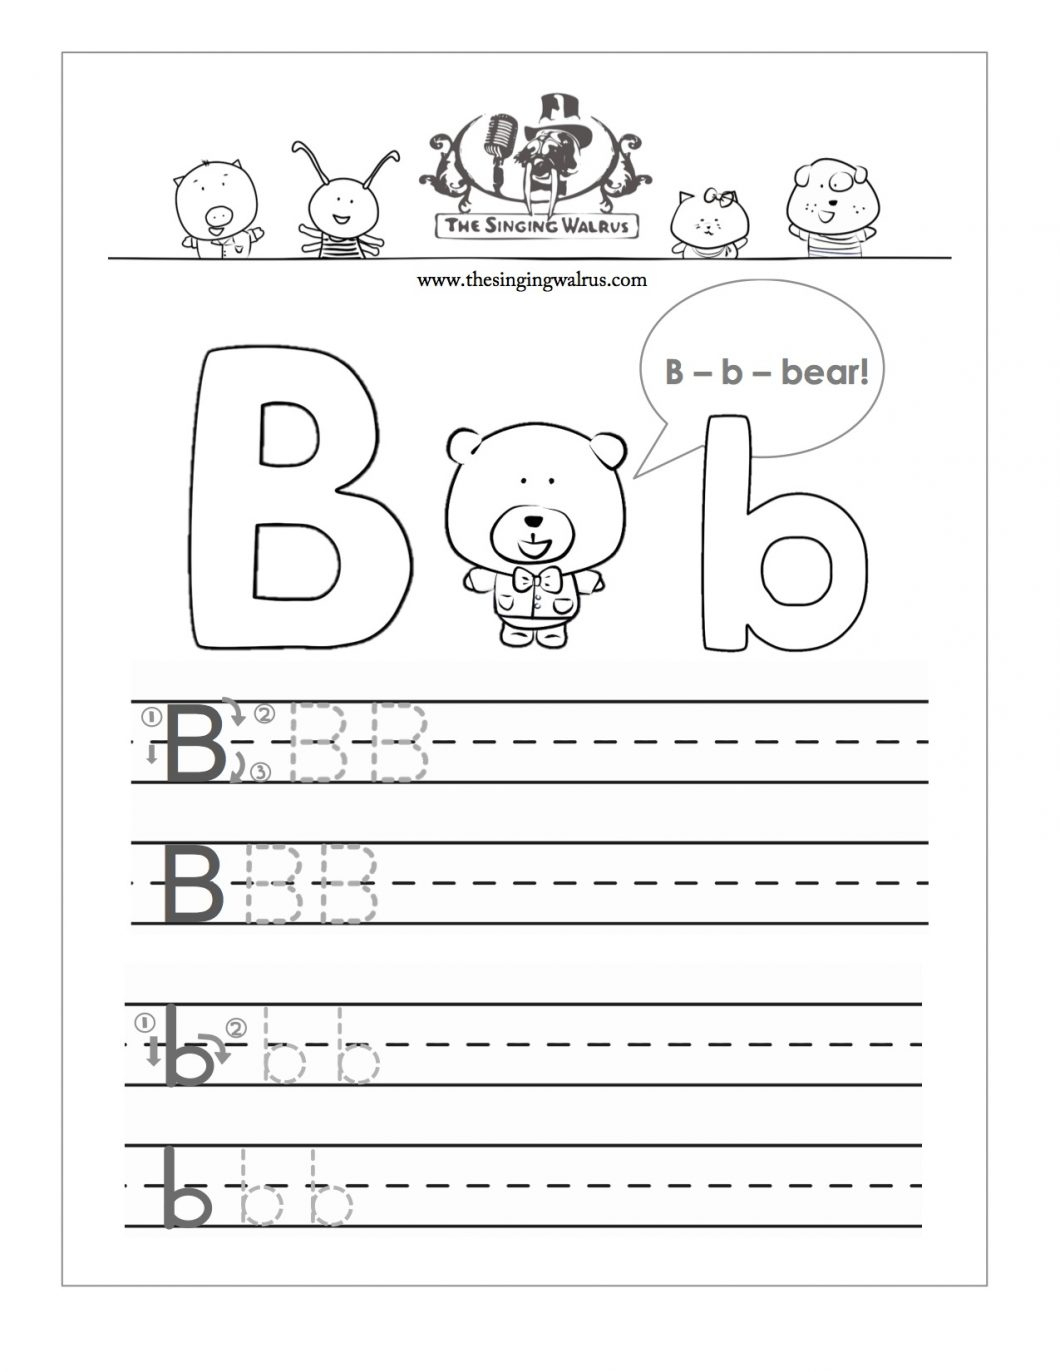 Writing Pages For Preschoolers – With Printable Cursive Handwriting - Free Printable Letter Writing Worksheets